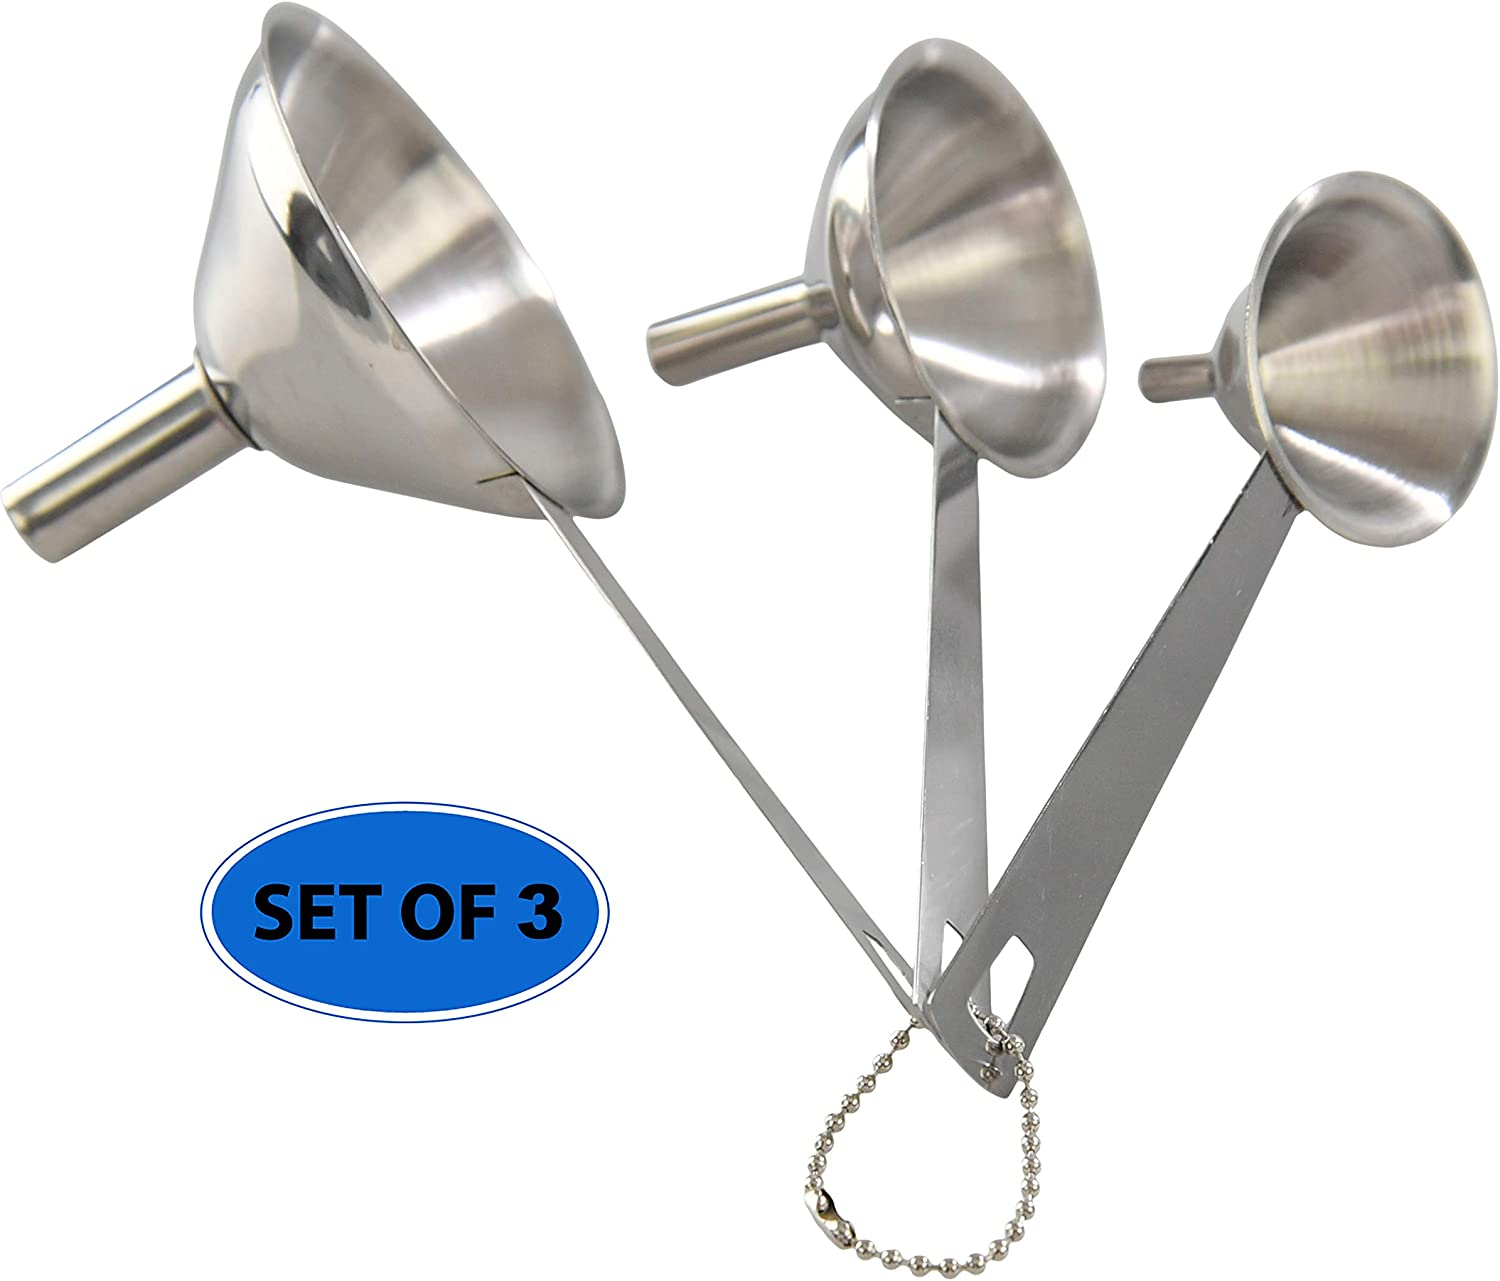 HOME-X Stainless Steel Miniature Funnel with Narrow Stem, Mini Kitchen Tools - Set of 3